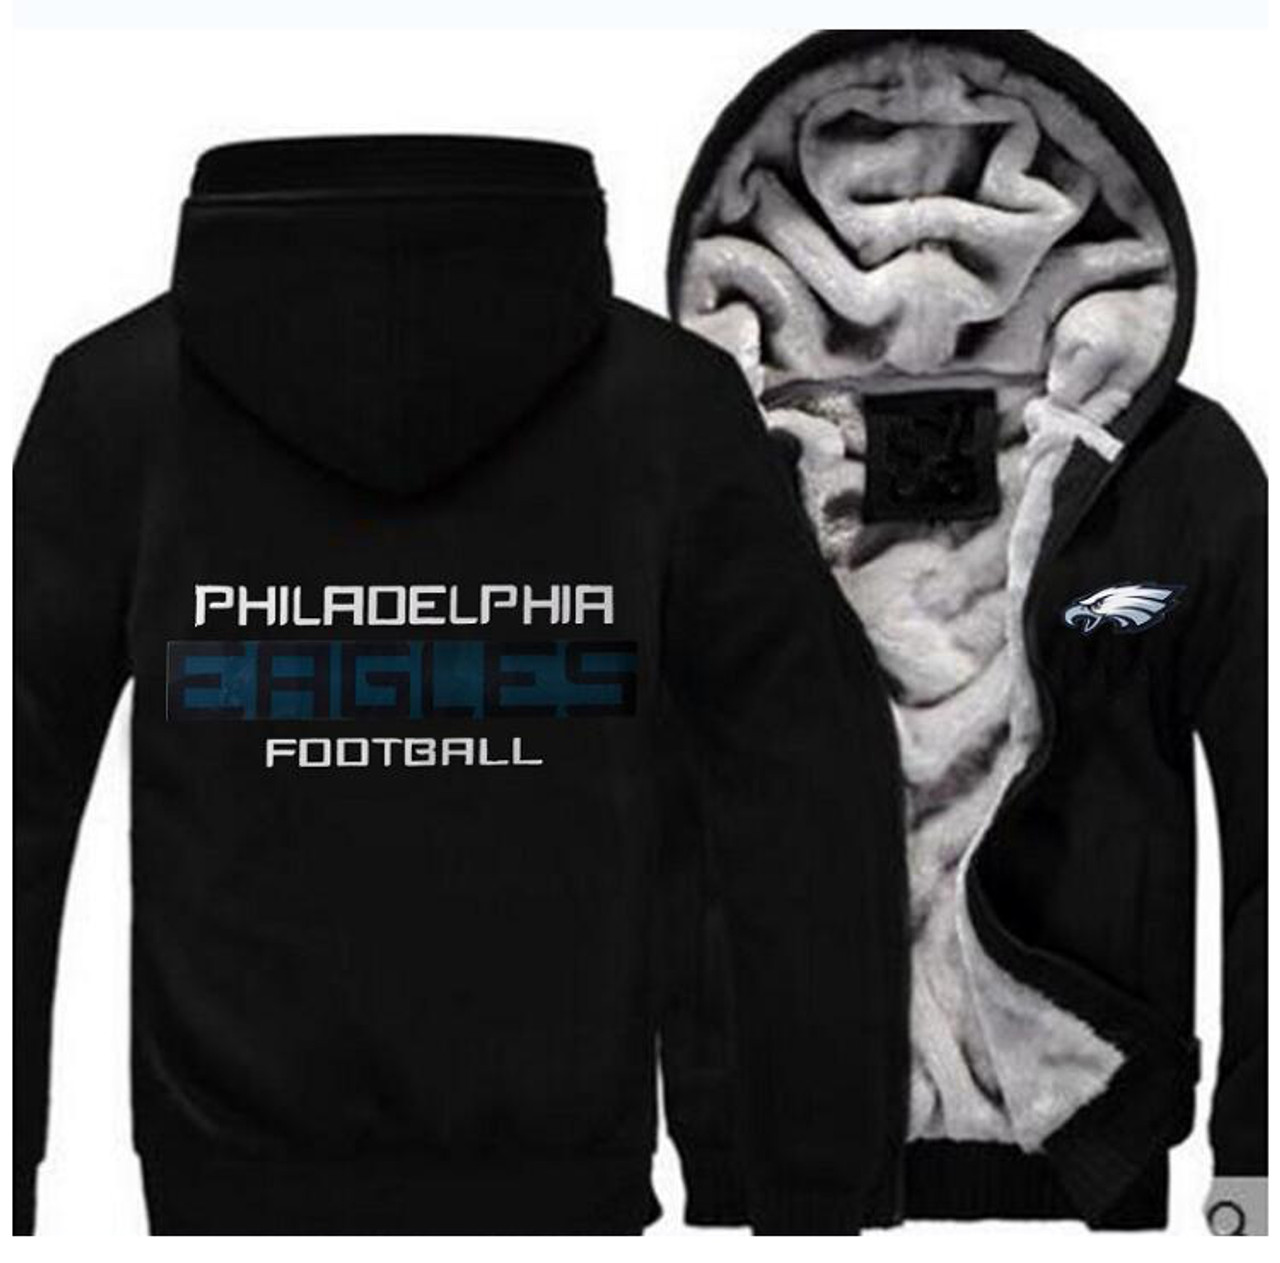 buy popular 68d4e 7c8fb **(EAGLES/NEW-OFFICIALLY-LICENSED-N.F.L.  PHILADELPHIA-EAGLES/NEW-TWO-TONE-STYLE,FLEECE-LINED-TEAM-JACKETS/3-D-CUSTOM-DETAILED-GRAPHIC-PRINTED-DOUBLE-S...